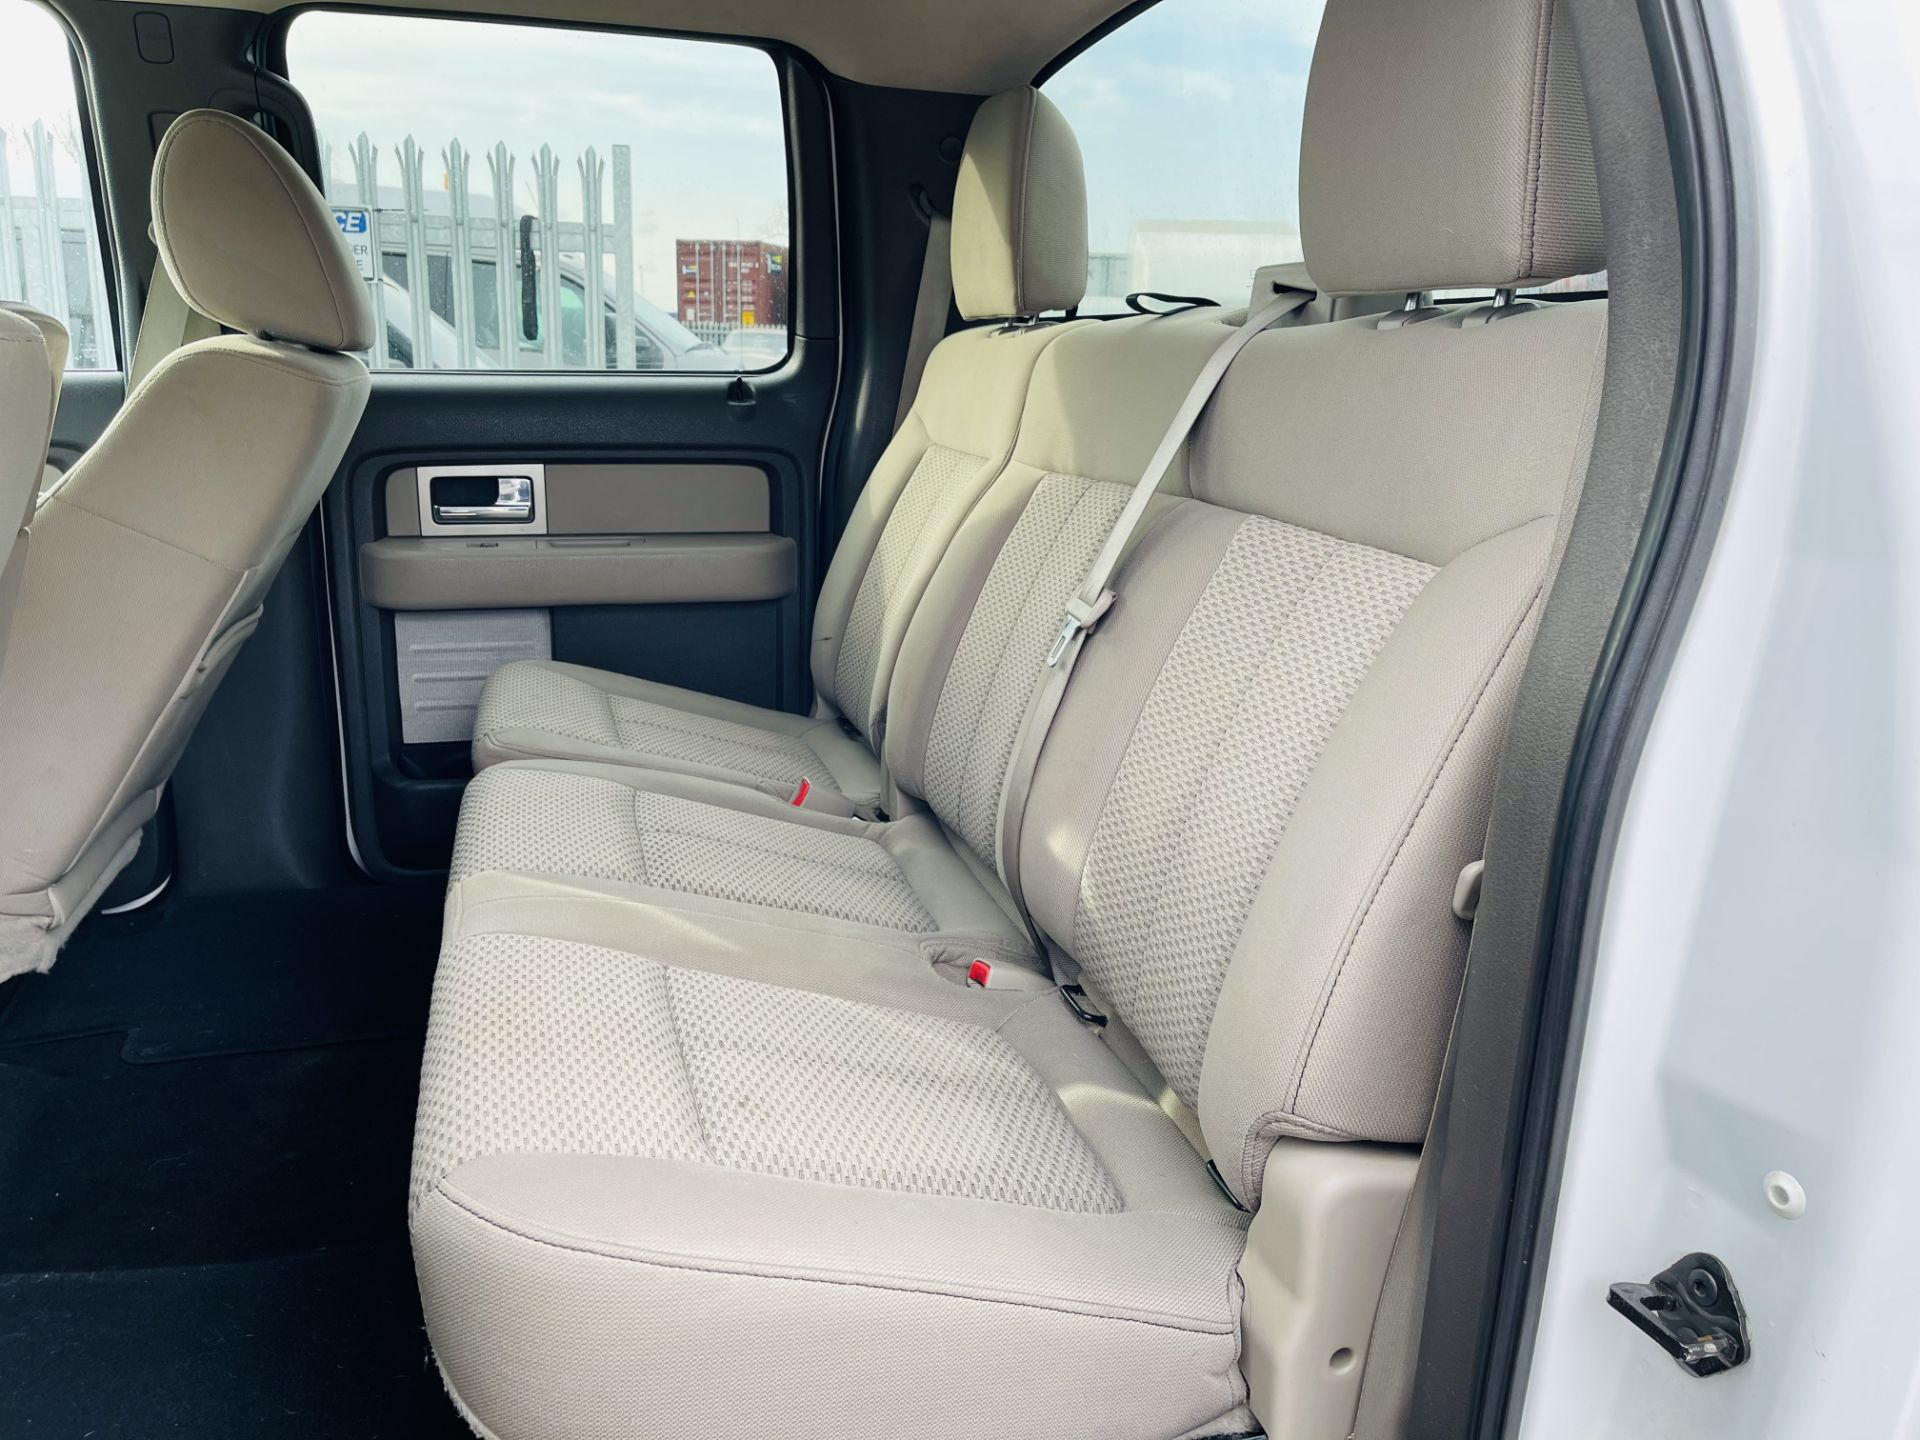 Ford F-150 XLT 4.6L V8 Super-crew 4WD 2010 ' 2010 Year' 6 Seats - Air con - NO RESERVE - Image 11 of 24